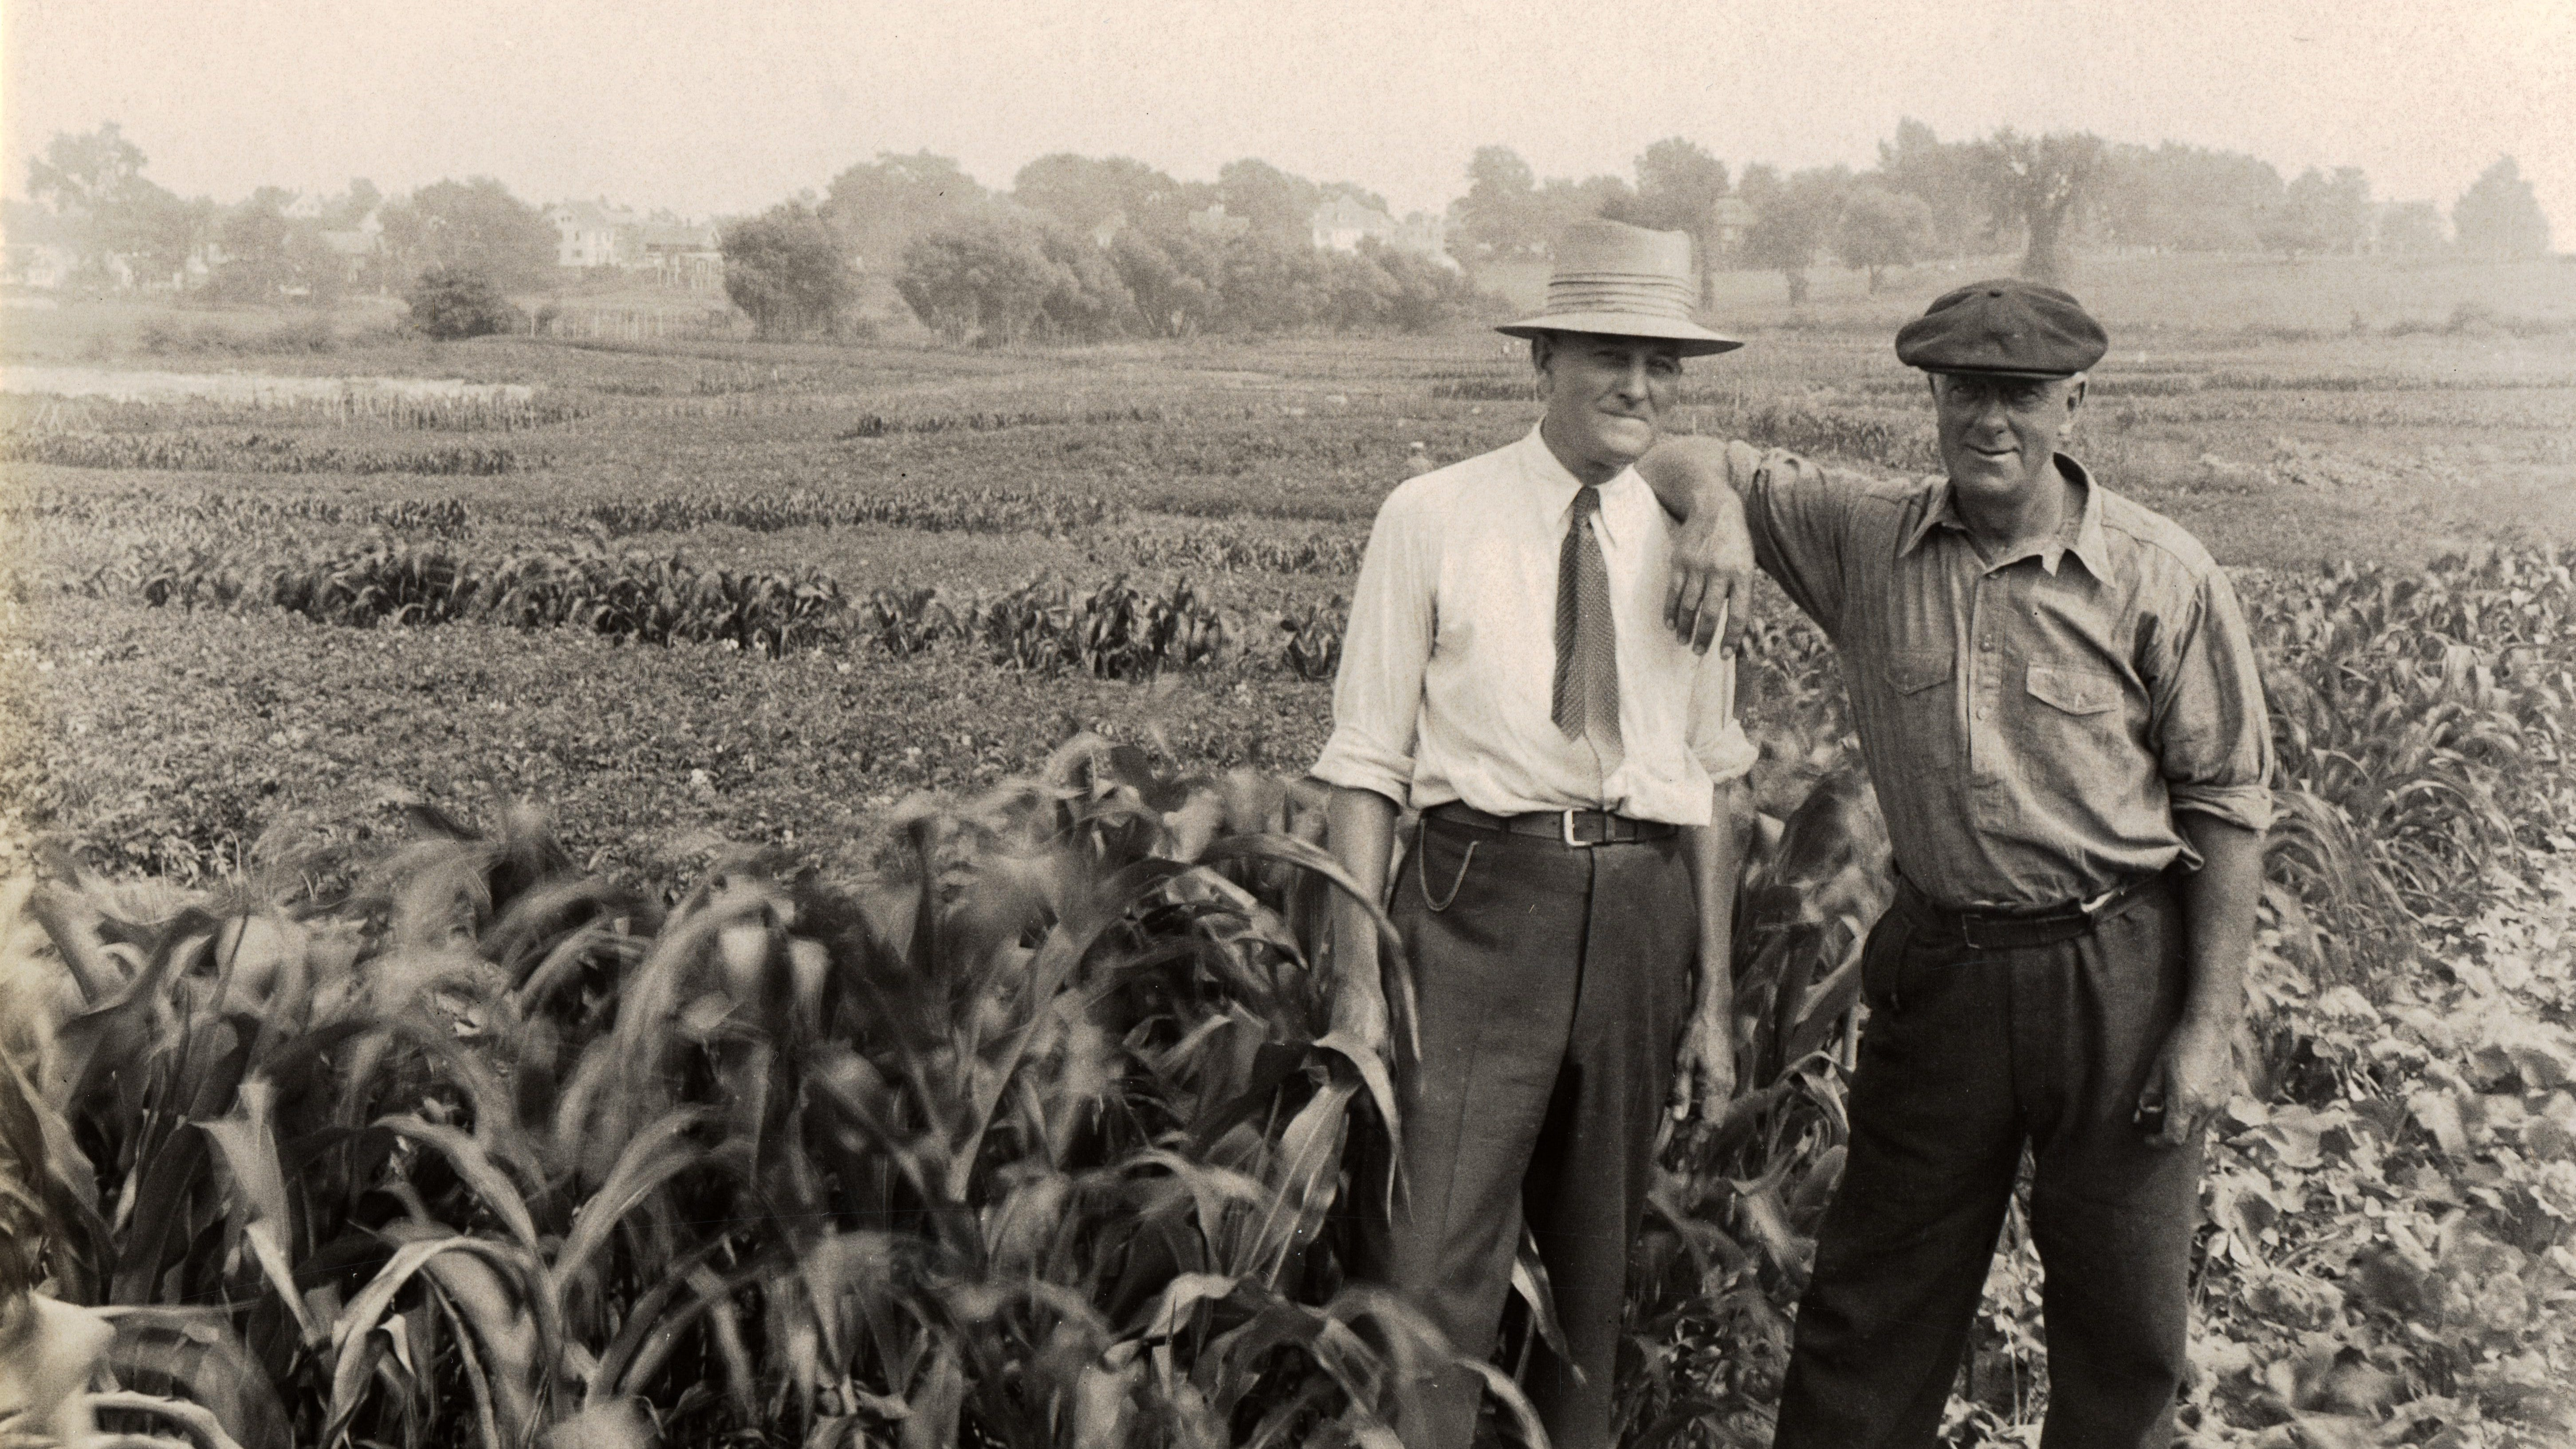 Two unidentified men stand amongst the subsistence garden off Thaxter Road on land loaned by the Portsmouth Building Association, c. 1935. The man in the white shirt at left also appears in a solo photograph [not featured], and he may be Raphael L. Costello, the supervisor for Portsmouth's subsistence gardens.